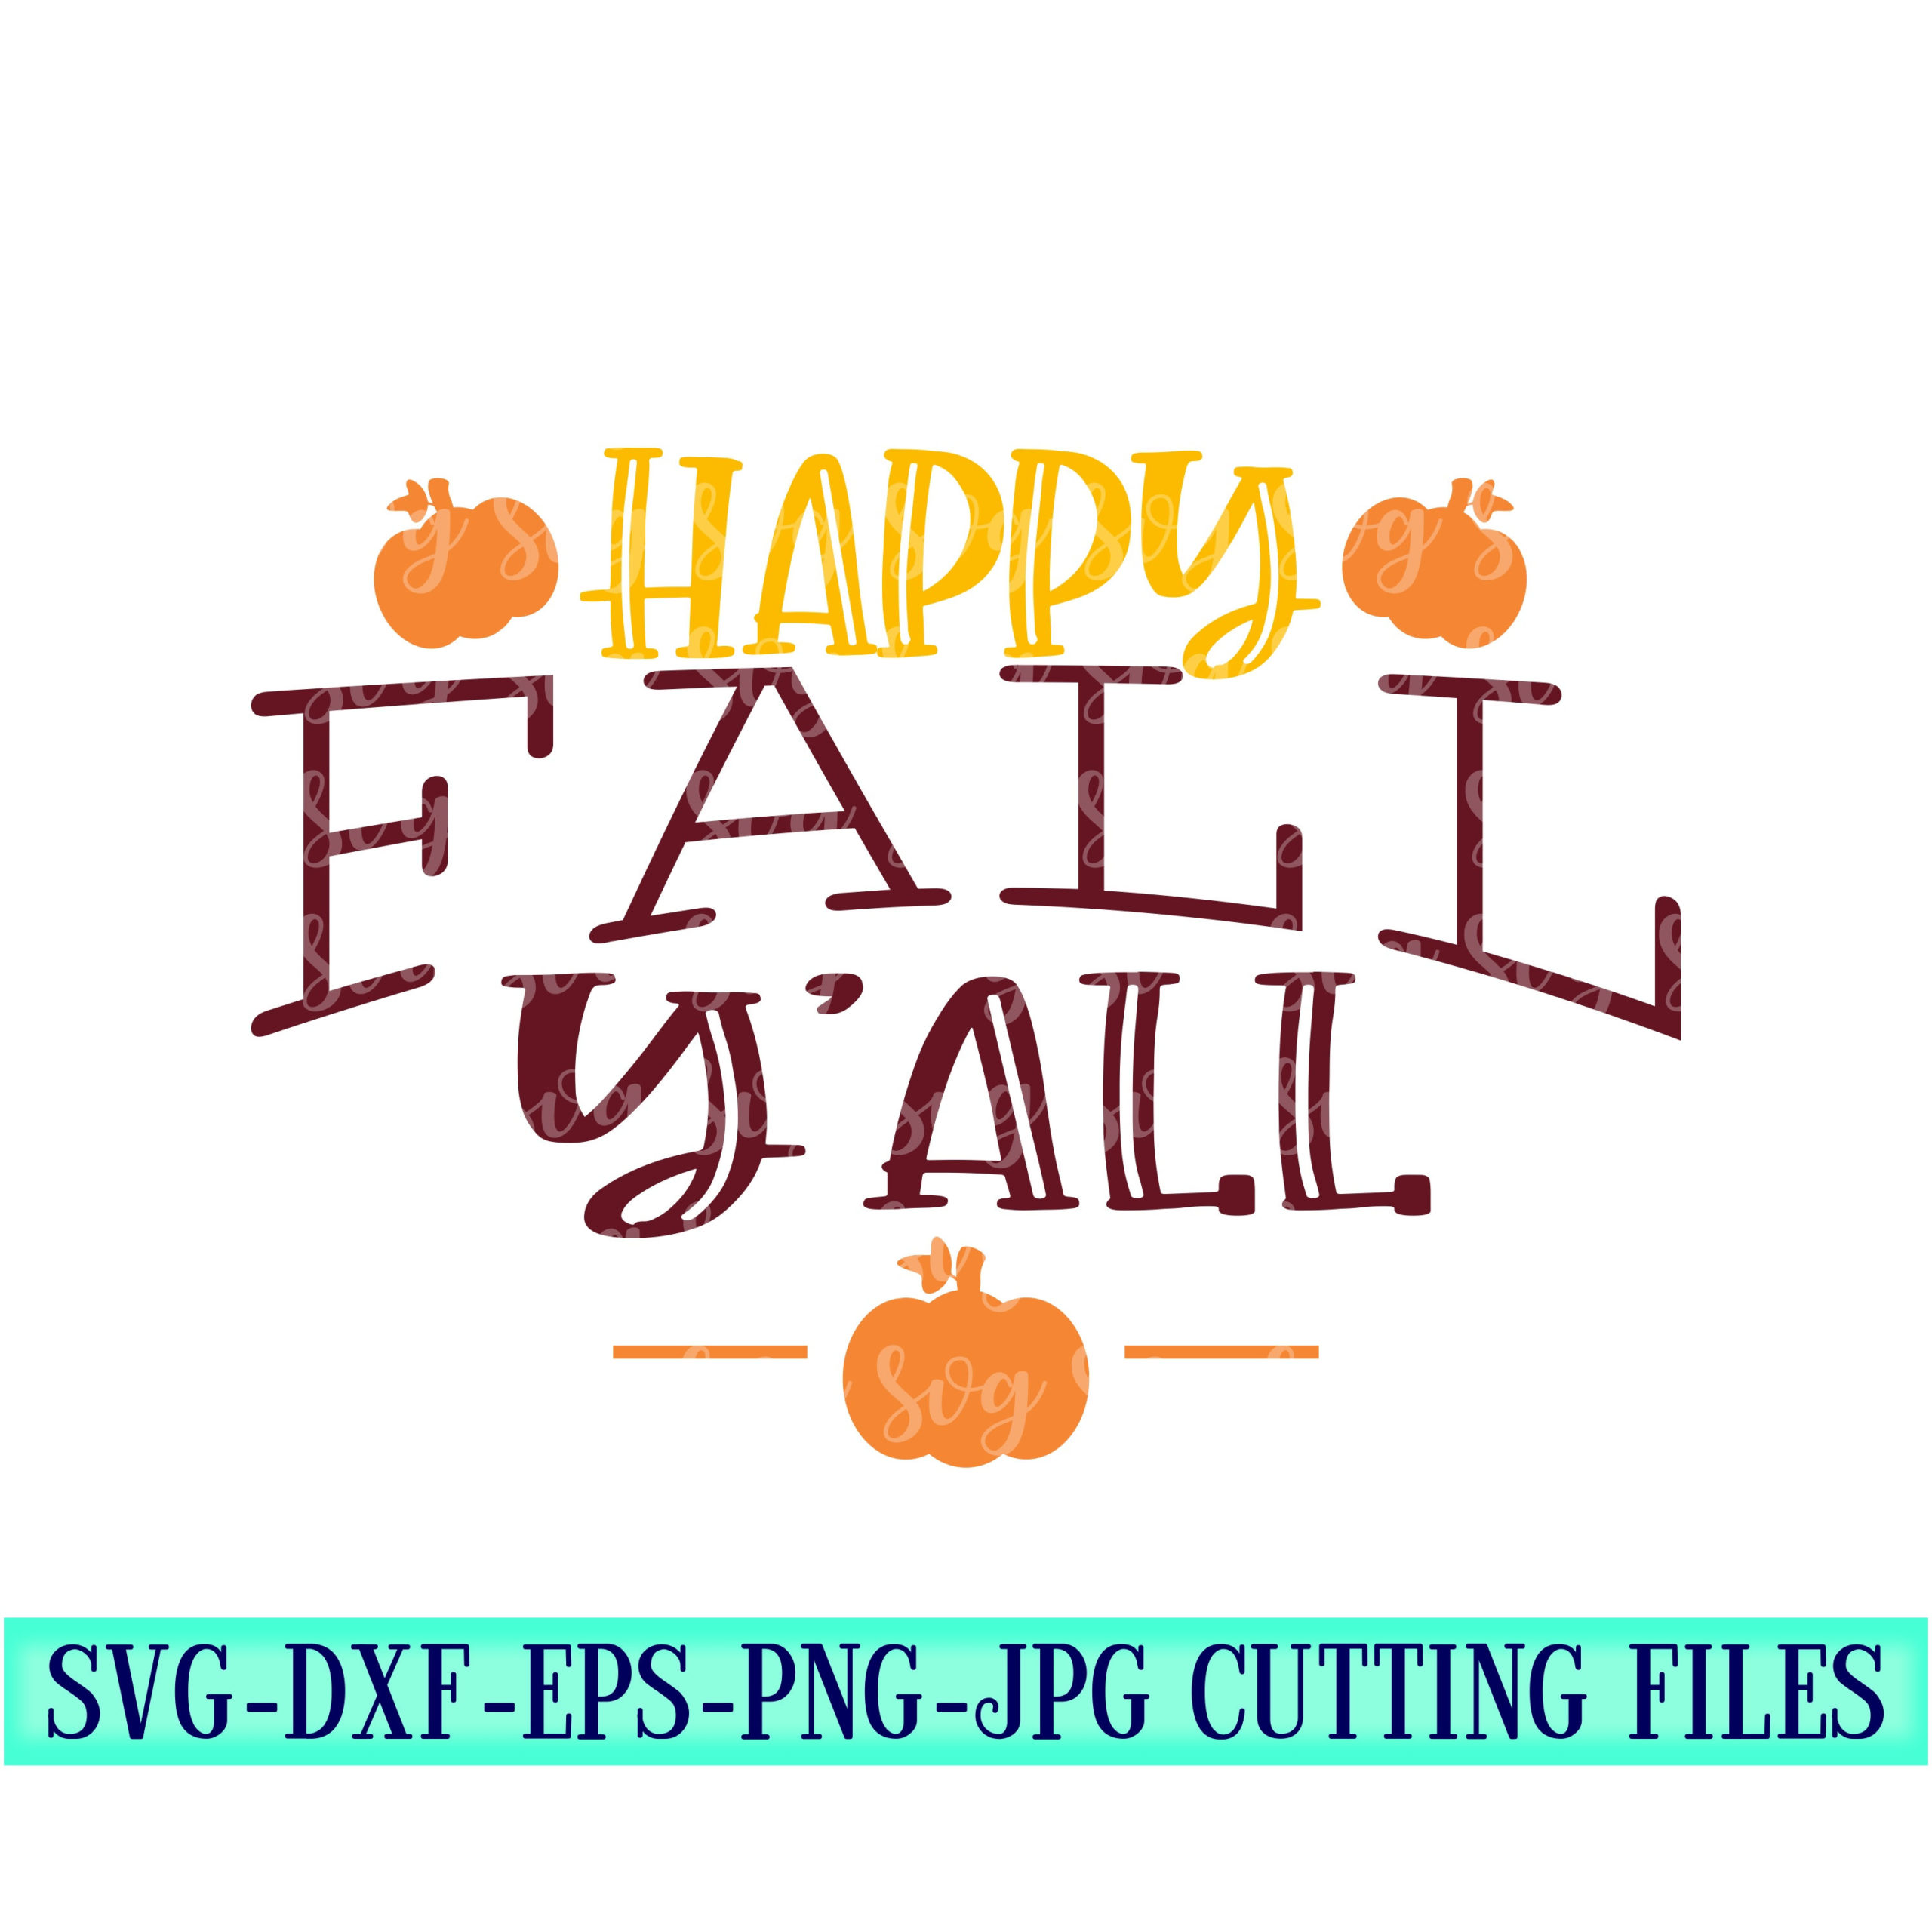 Happy-fall-yall-svgpumpkin-svg-falling-leaves-svg-fall-svg-pumpkins-svg-sweater-weather-svg-fall-svg-designcricut-svgsvg-for-mobile-5f6f70fe